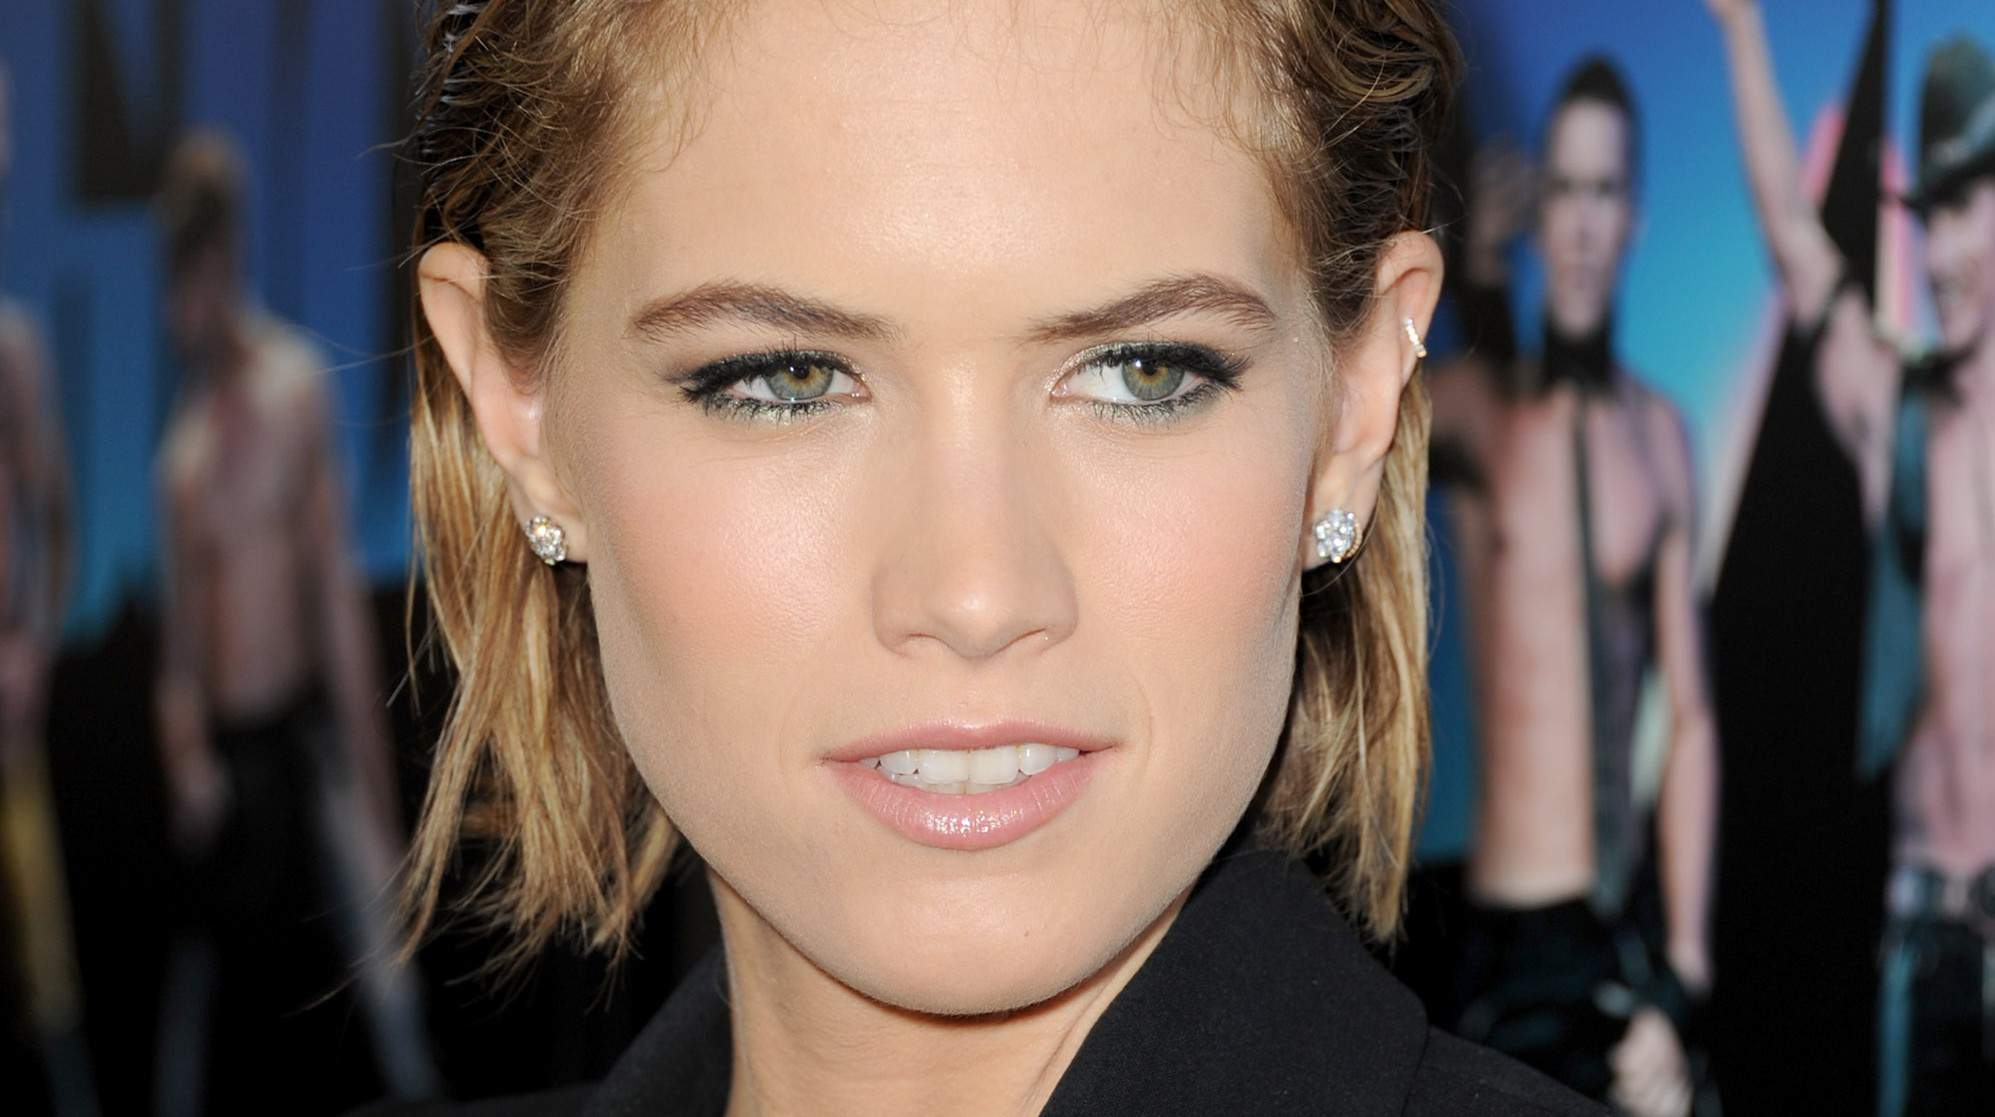 Cody Horn Wallpaper